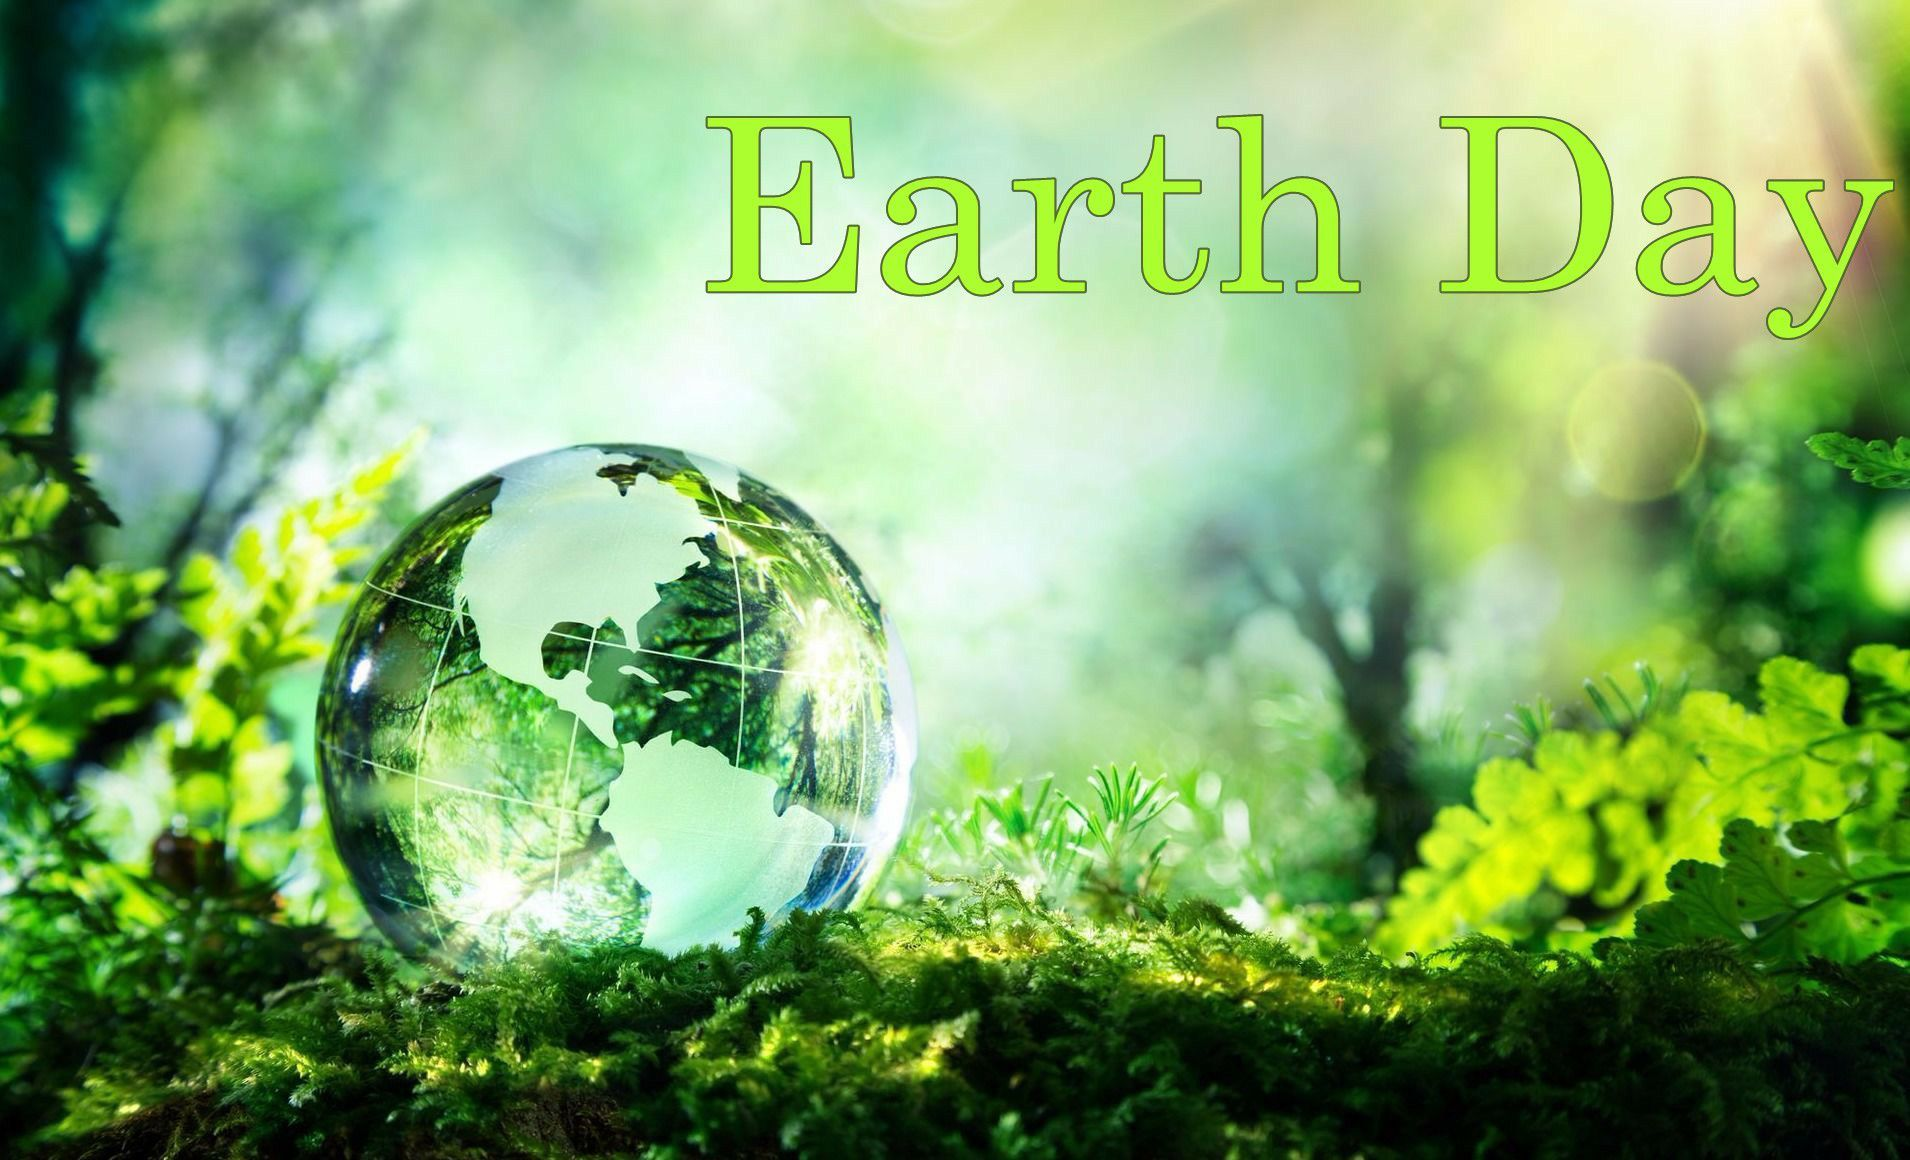 Earth Day Wallpaper Download | Earth day, Earth